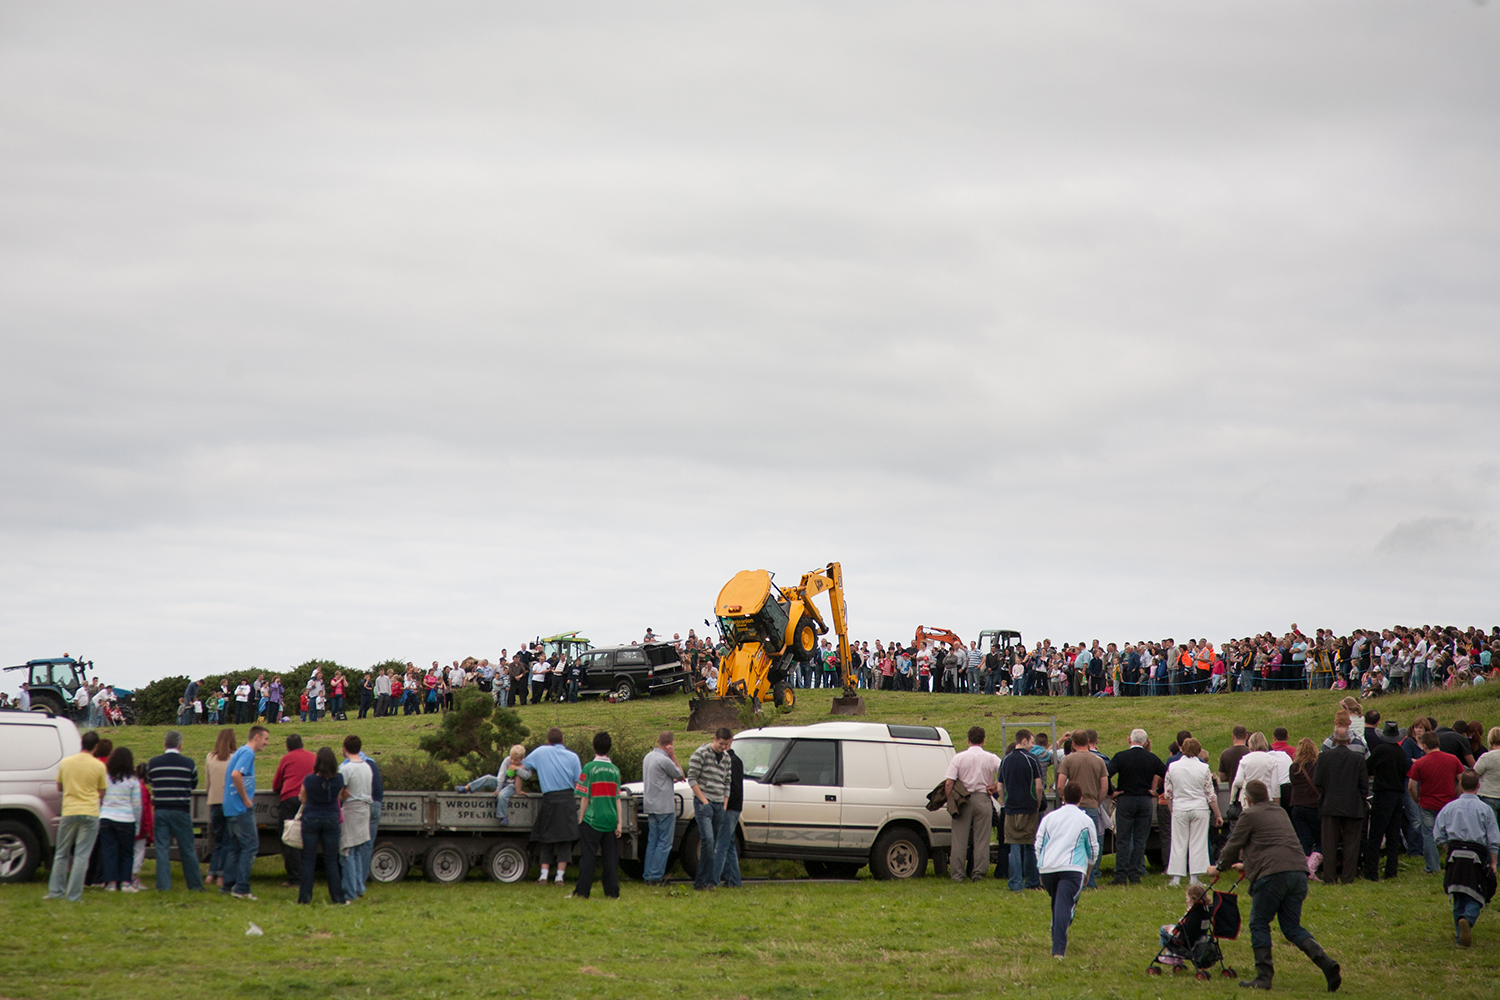 A documentary photograph of a people watching a jcb perform at an agricultural show in the west of ireland